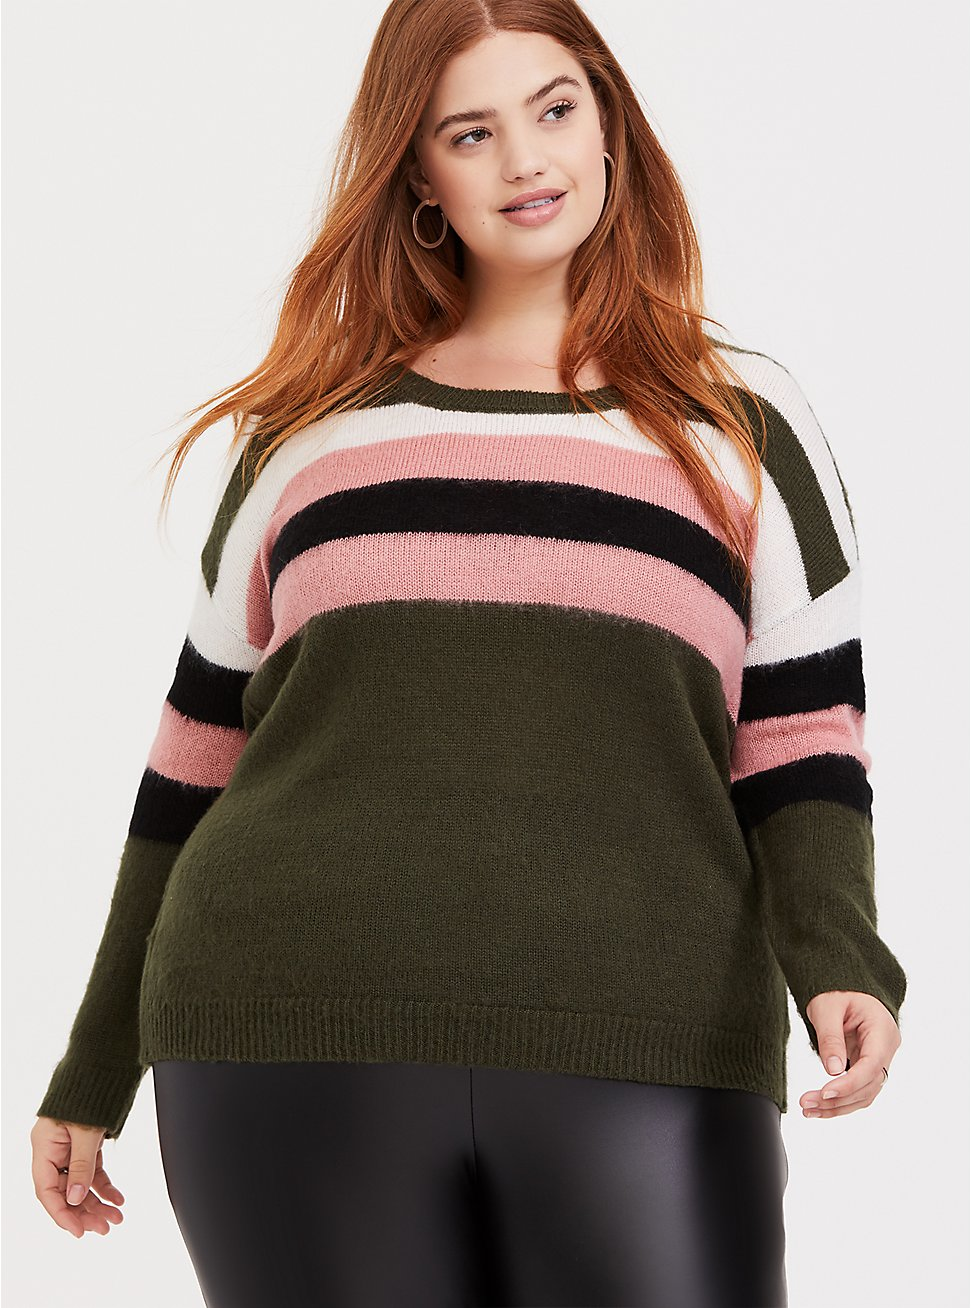 Plus Size Olive Green Multi-Color Striped Knit Sweater, , hi-res